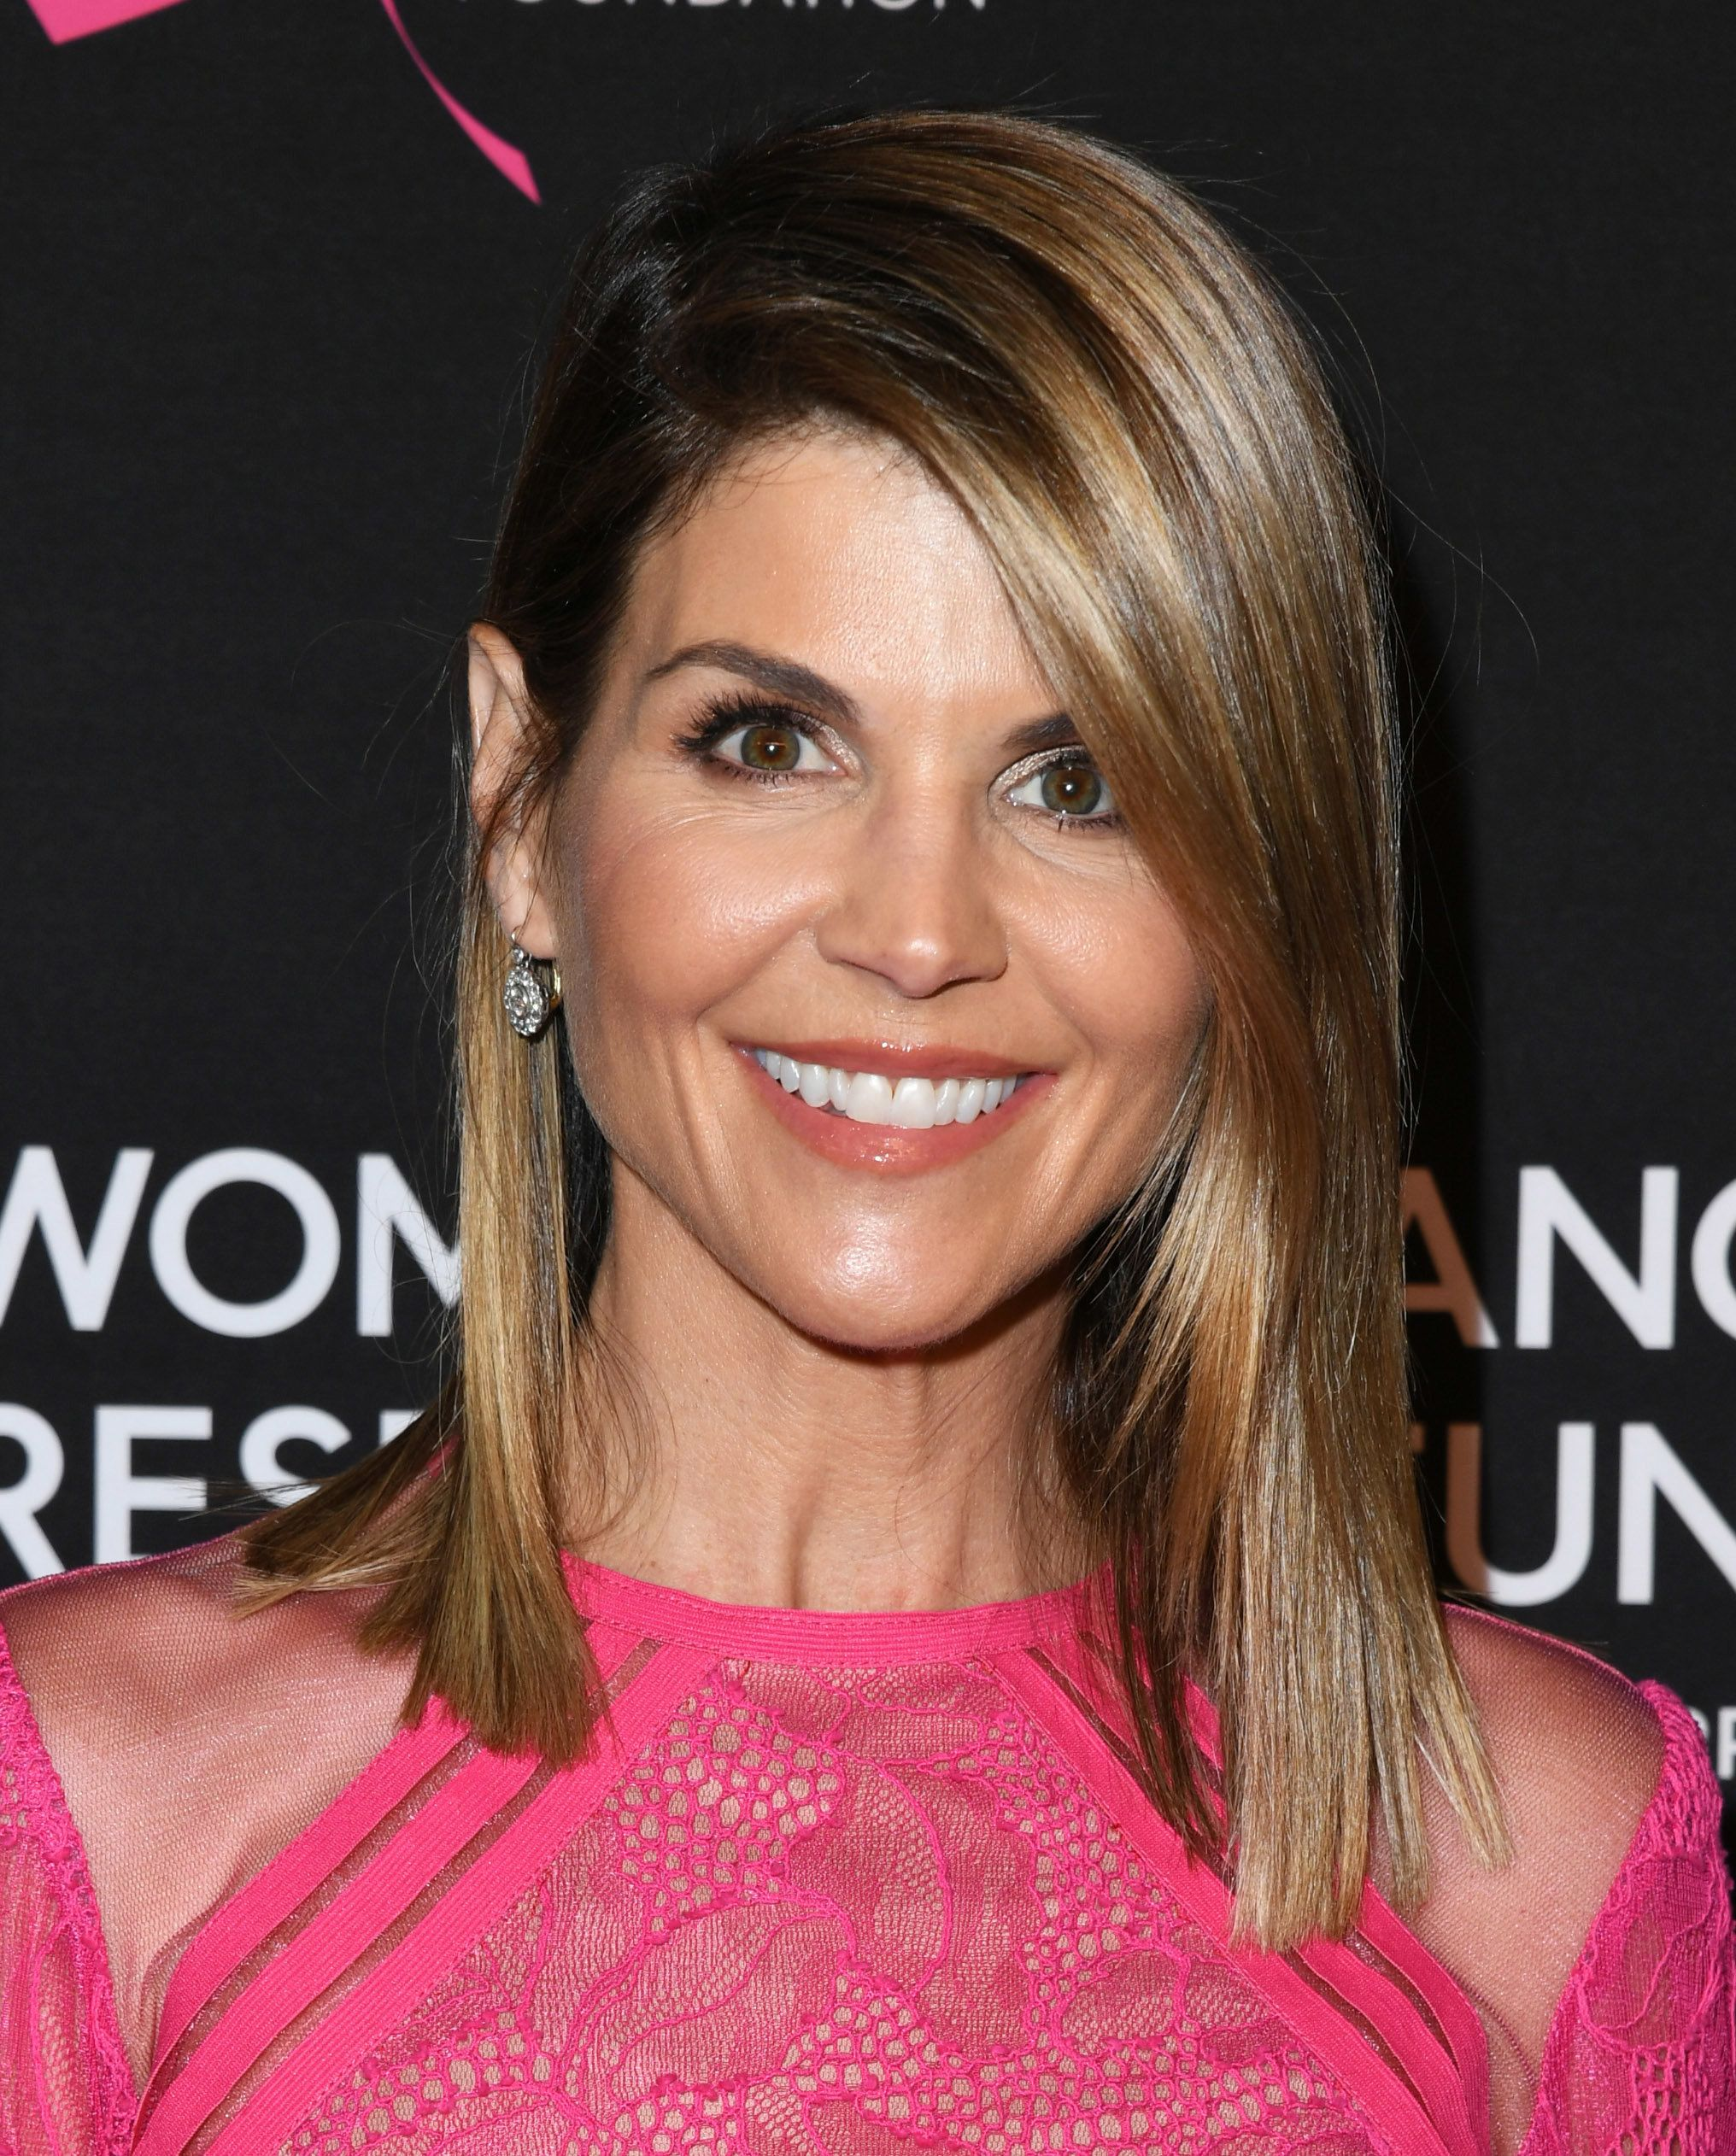 BEVERLY HILLS, CALIFORNIA - FEBRUARY 28:  Lori Loughlin attends The Women's Cancer Research Fund's An Unforgettable Evening Benefit Gala at the Beverly Wilshire Four Seasons Hotel on February 28, 2019 in Beverly Hills, California. (Photo by Jon Kopaloff/FilmMagic)